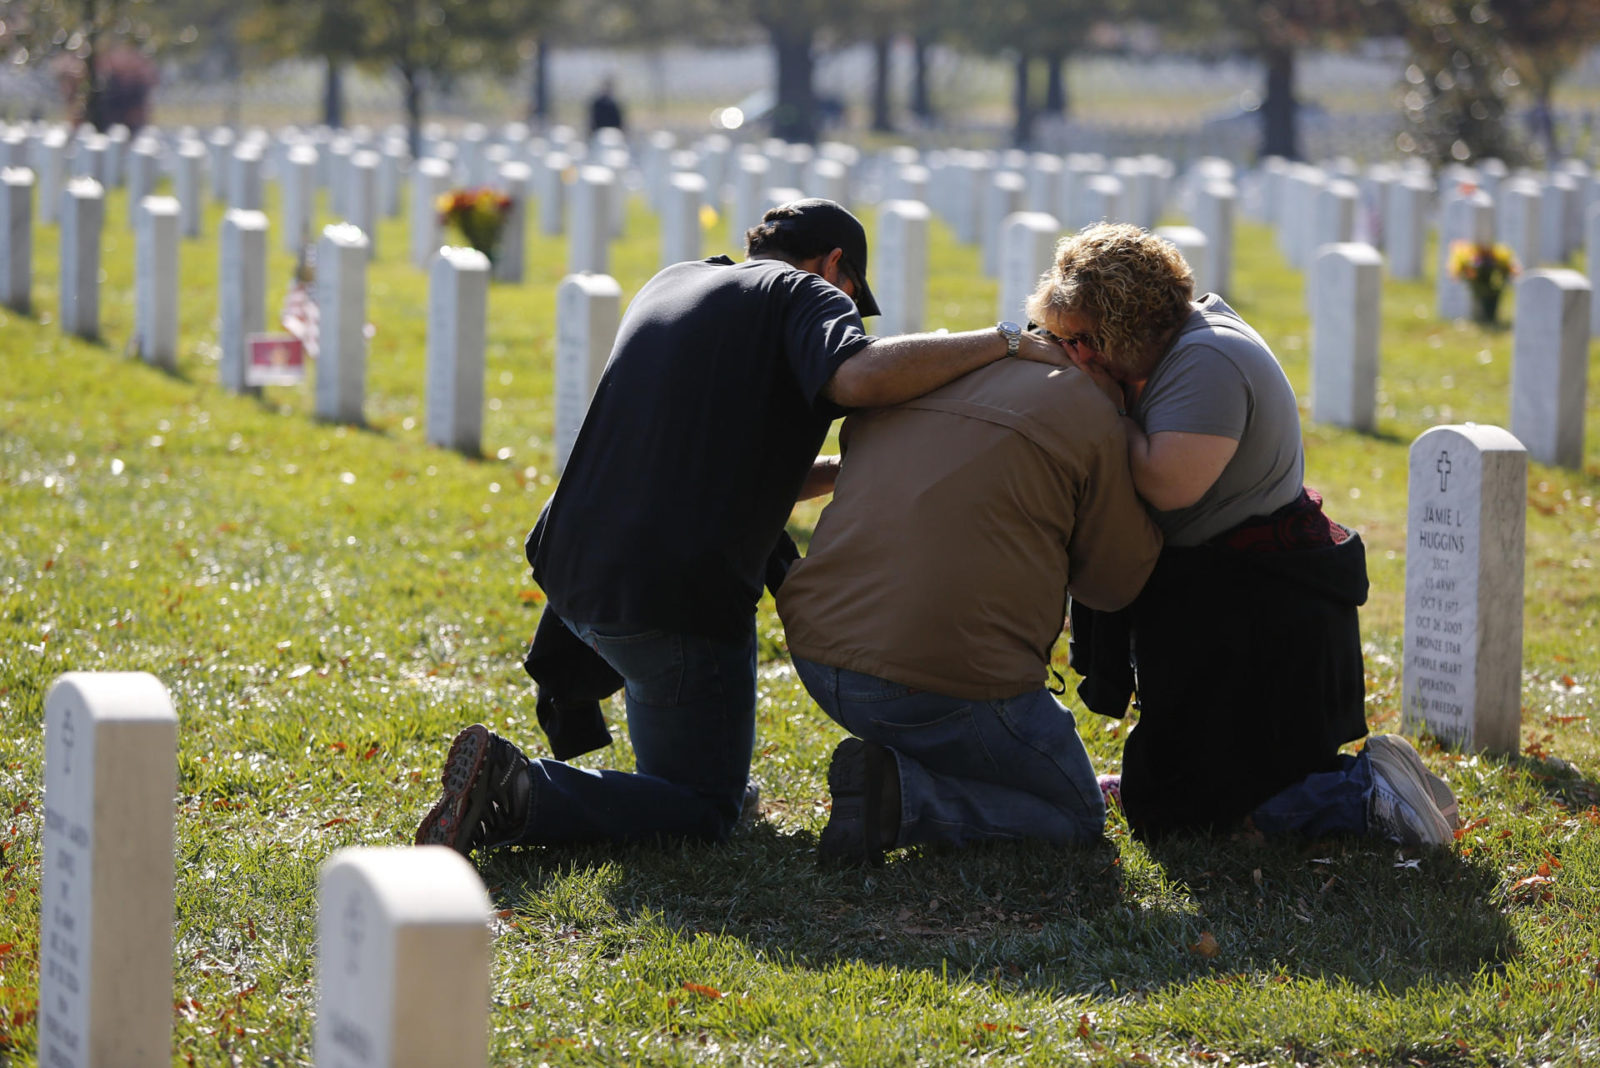 People grieve at a gravesite in Section 60, an area where members of the U.S. military who were killed in action in Iraq and Afghanistan are buried, during Veterans Day observances at Arlington National Cemetery in Arlington, Virginia, November 11, 2012. REUTERS/Jonathan Ernst (UNITED STATES - Tags: POLITICS MILITARY)